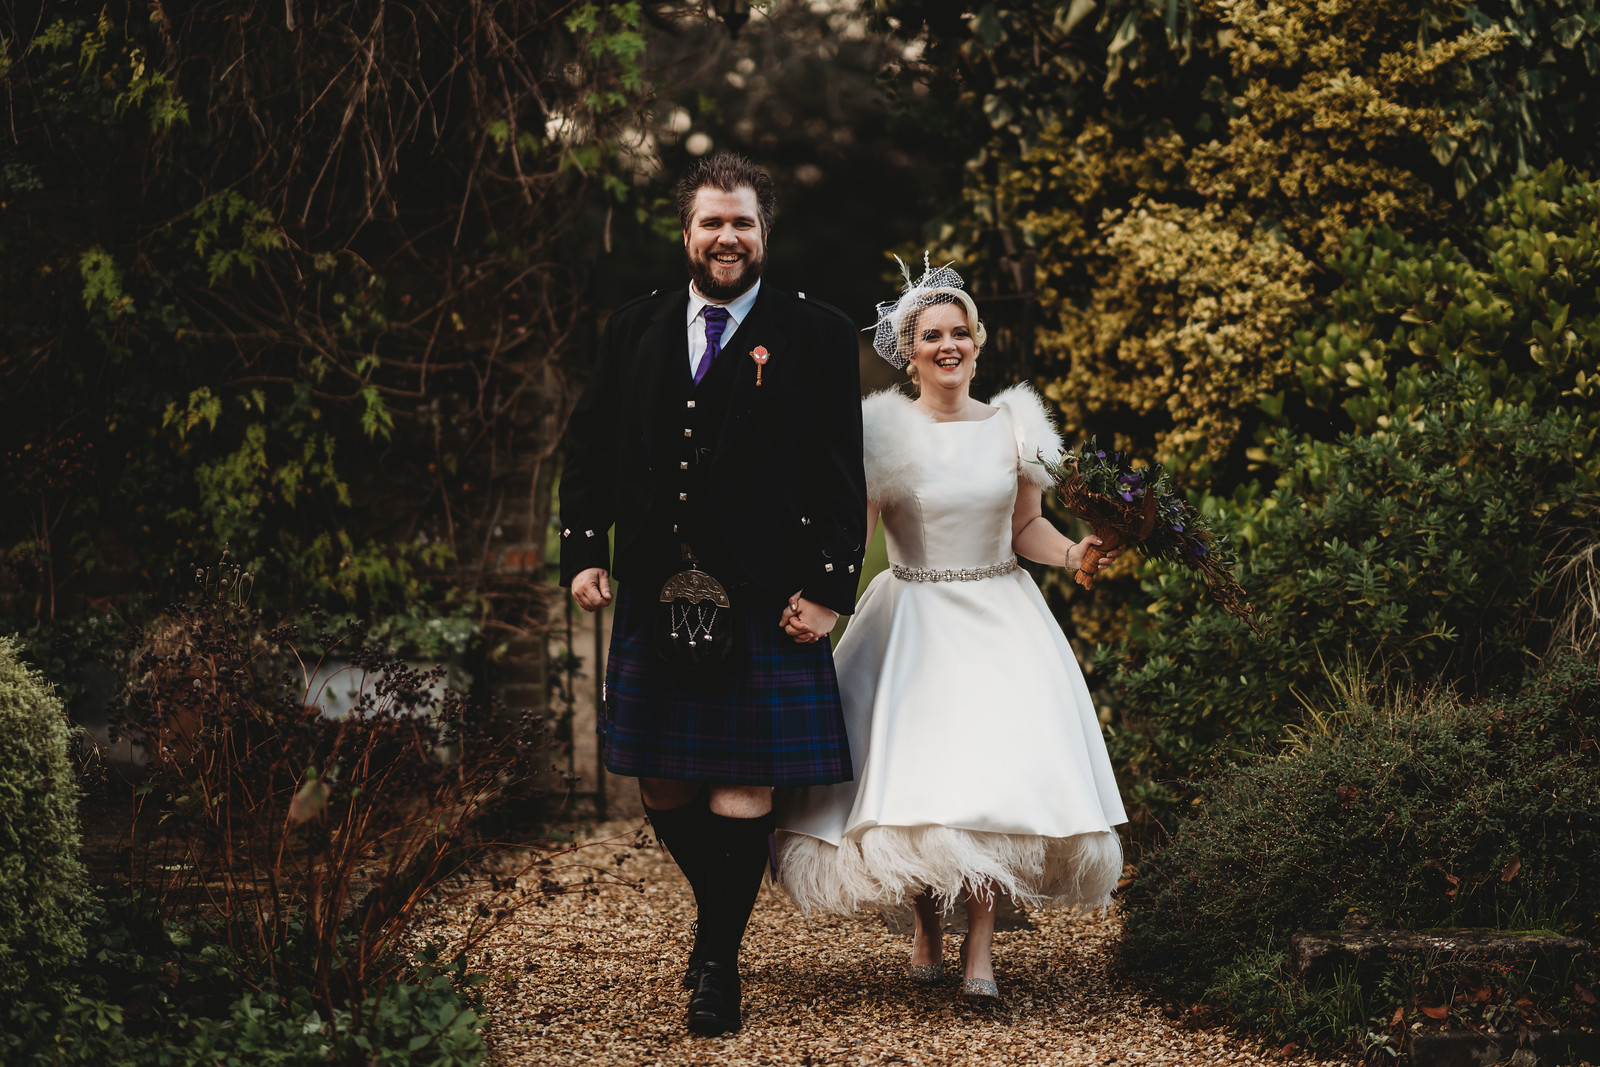 Full of smiles - bride and groom wedding photo